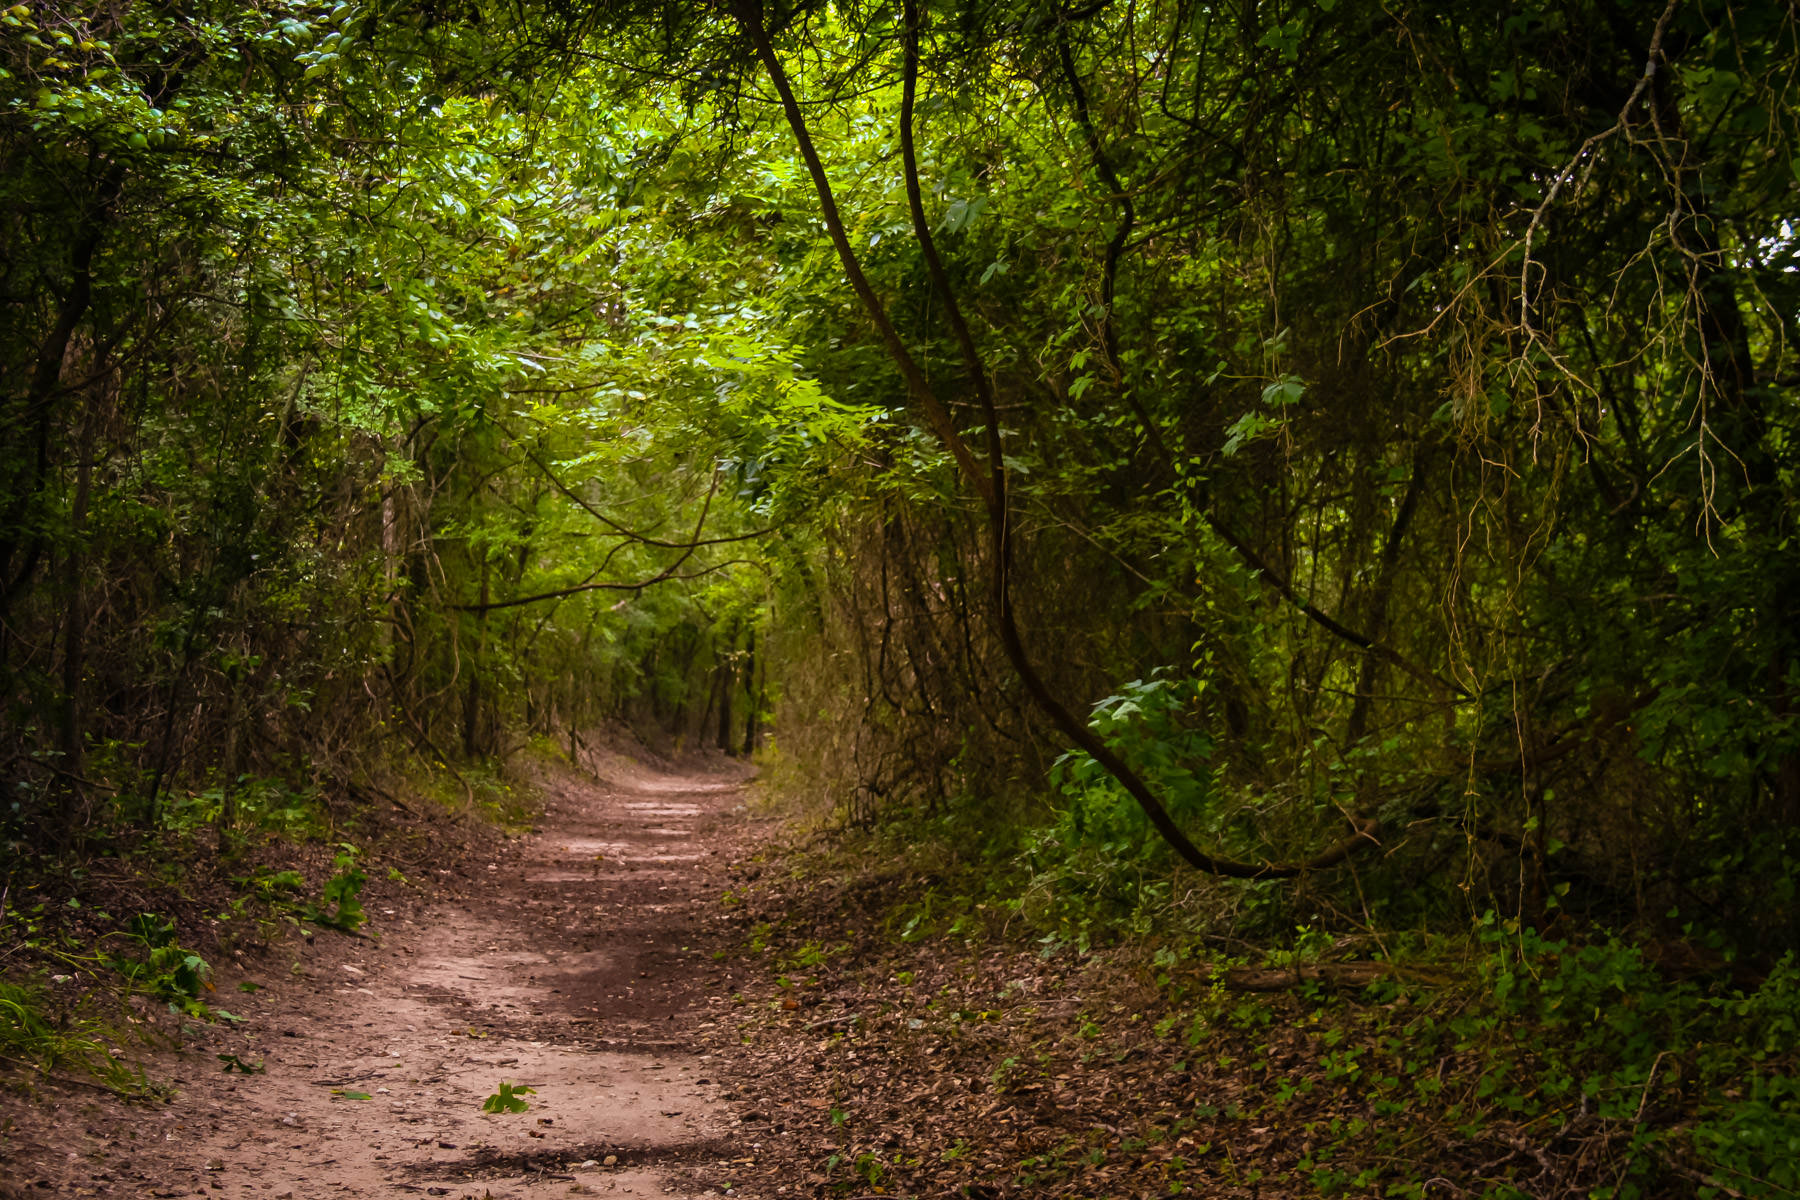 A somewhat-creepy path through the forest at Dinosaur Valley State Park, Texas.